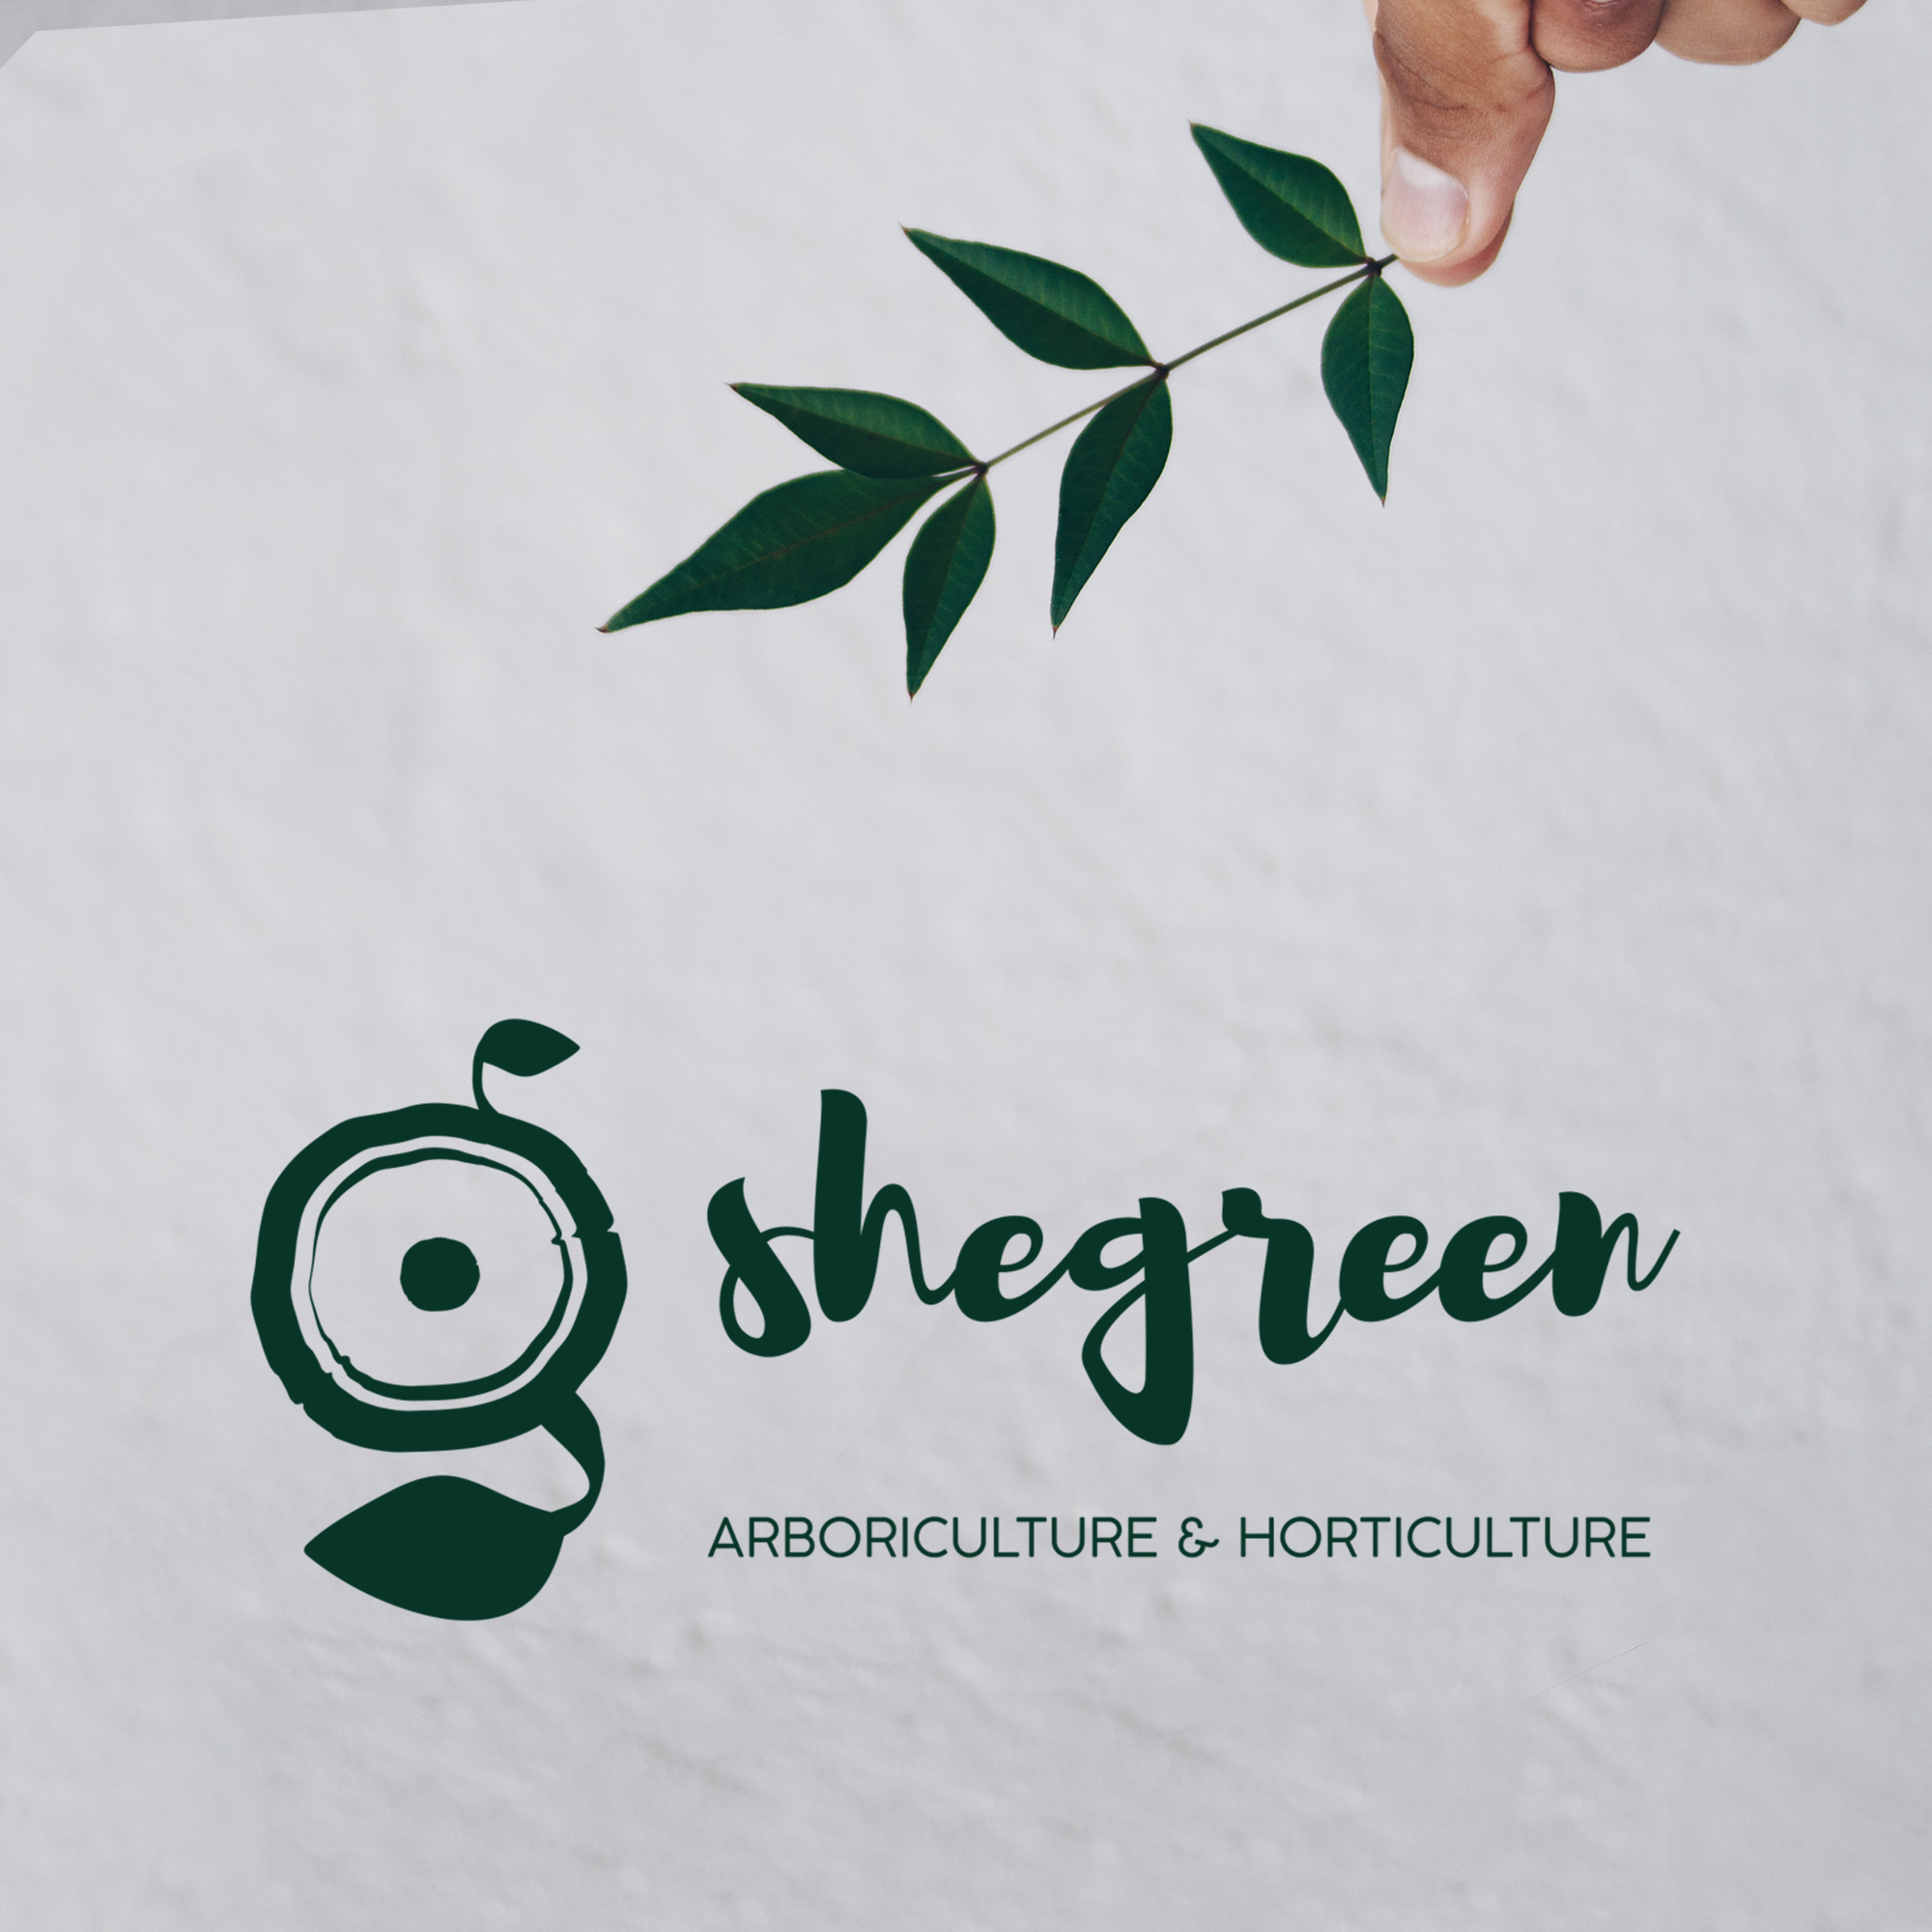 Shegreen Logo Design